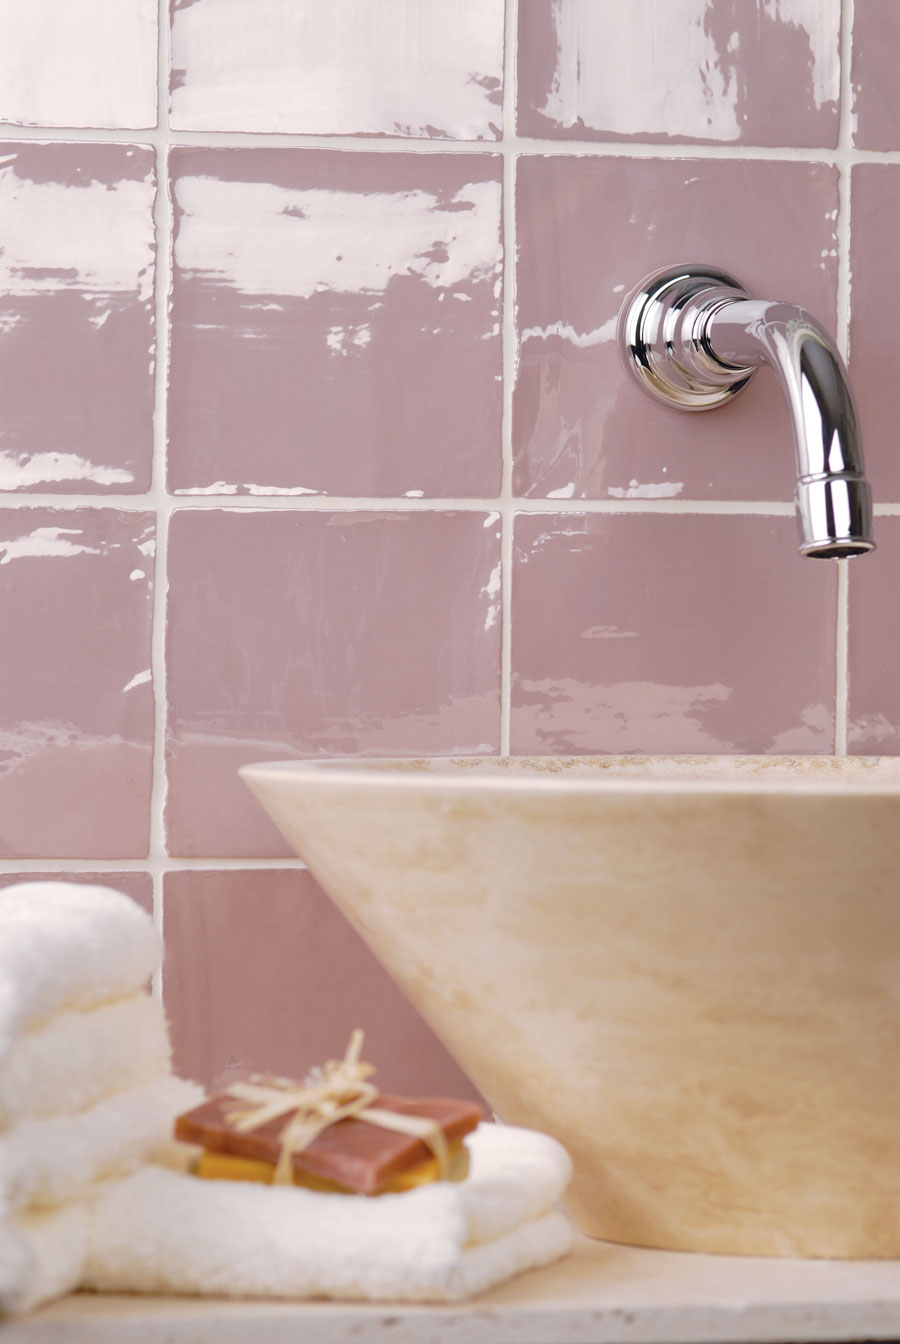 Wall tiles wall tile ideas from tims tiles residence blossom the winchester tile company dailygadgetfo Choice Image